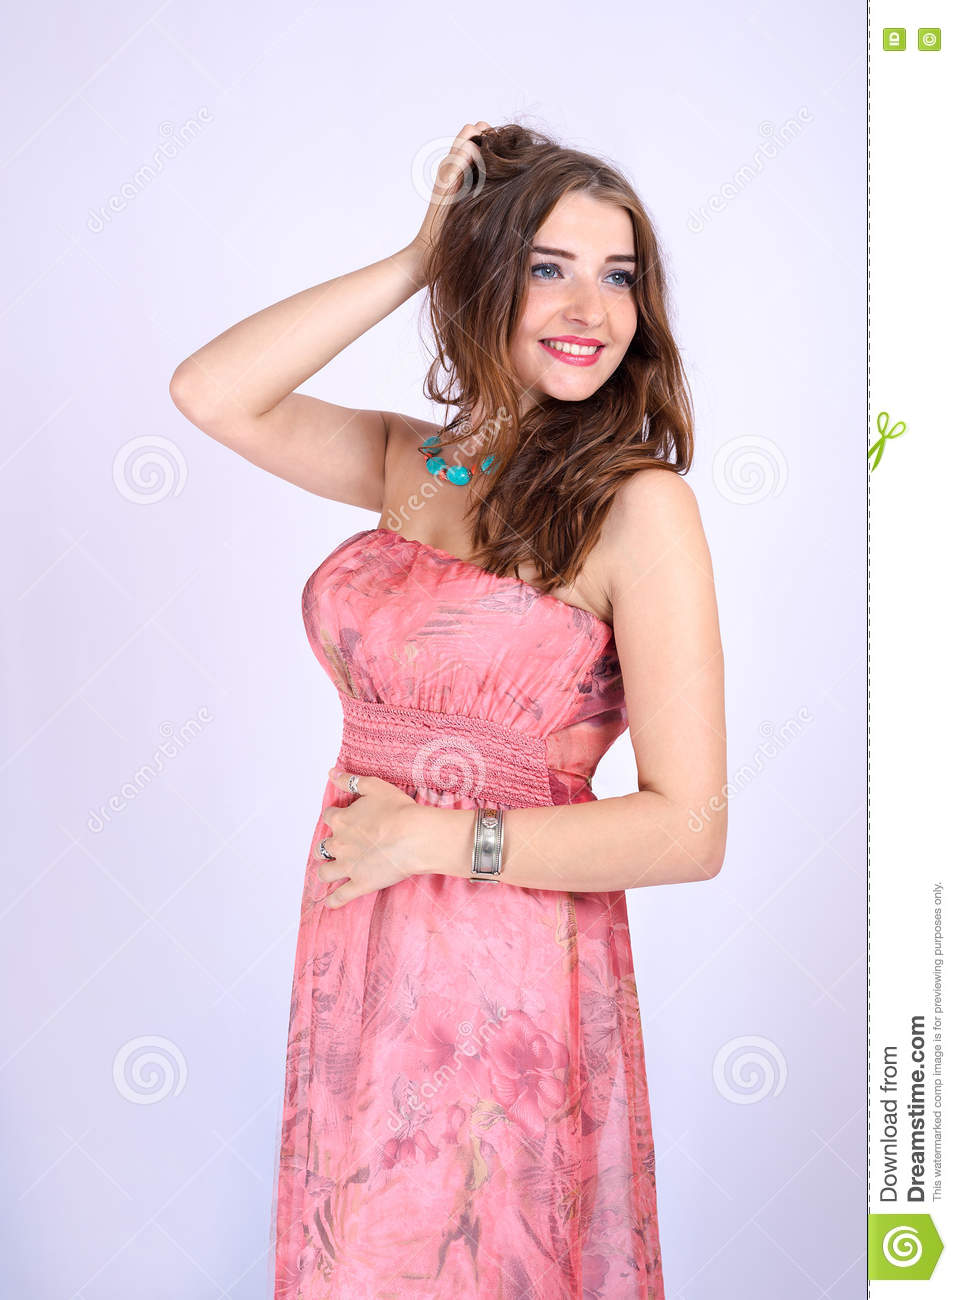 young women with big breast